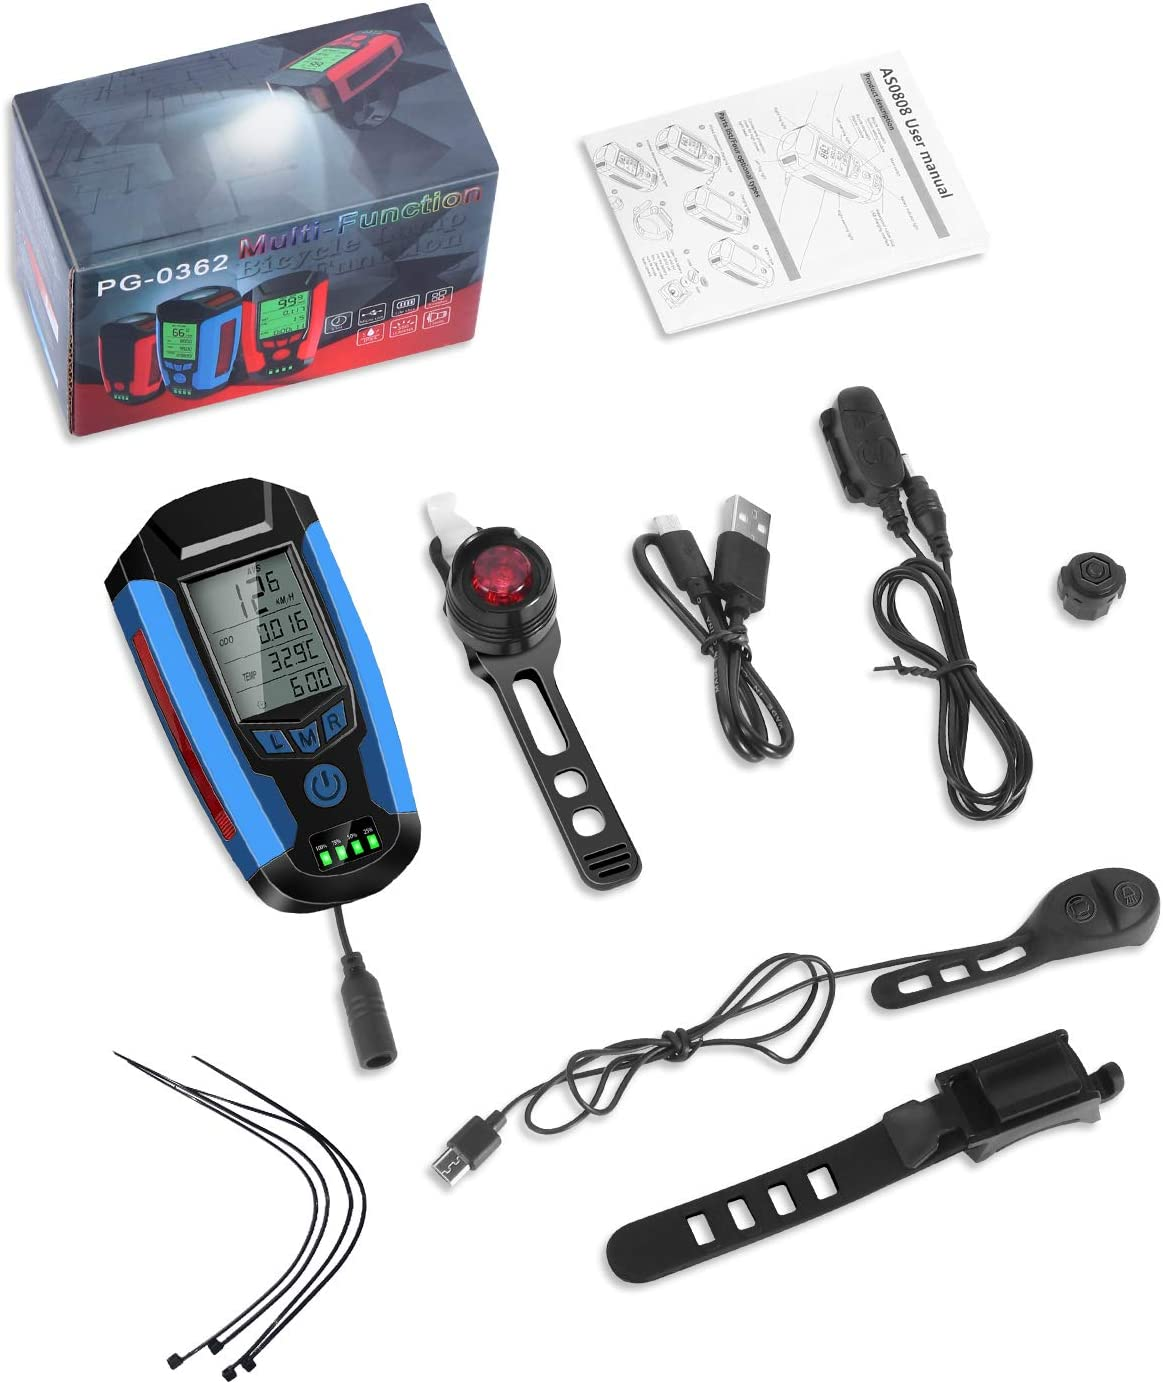 5 Lighting Modes Flashlight Hiking Camping All Mountain /& Road Cycling Bicycle Headlight Taillight,USB Rechargeable Bicycle Computer with Loud Bike Bell KLL Bike Light Set with Bike Speedometer